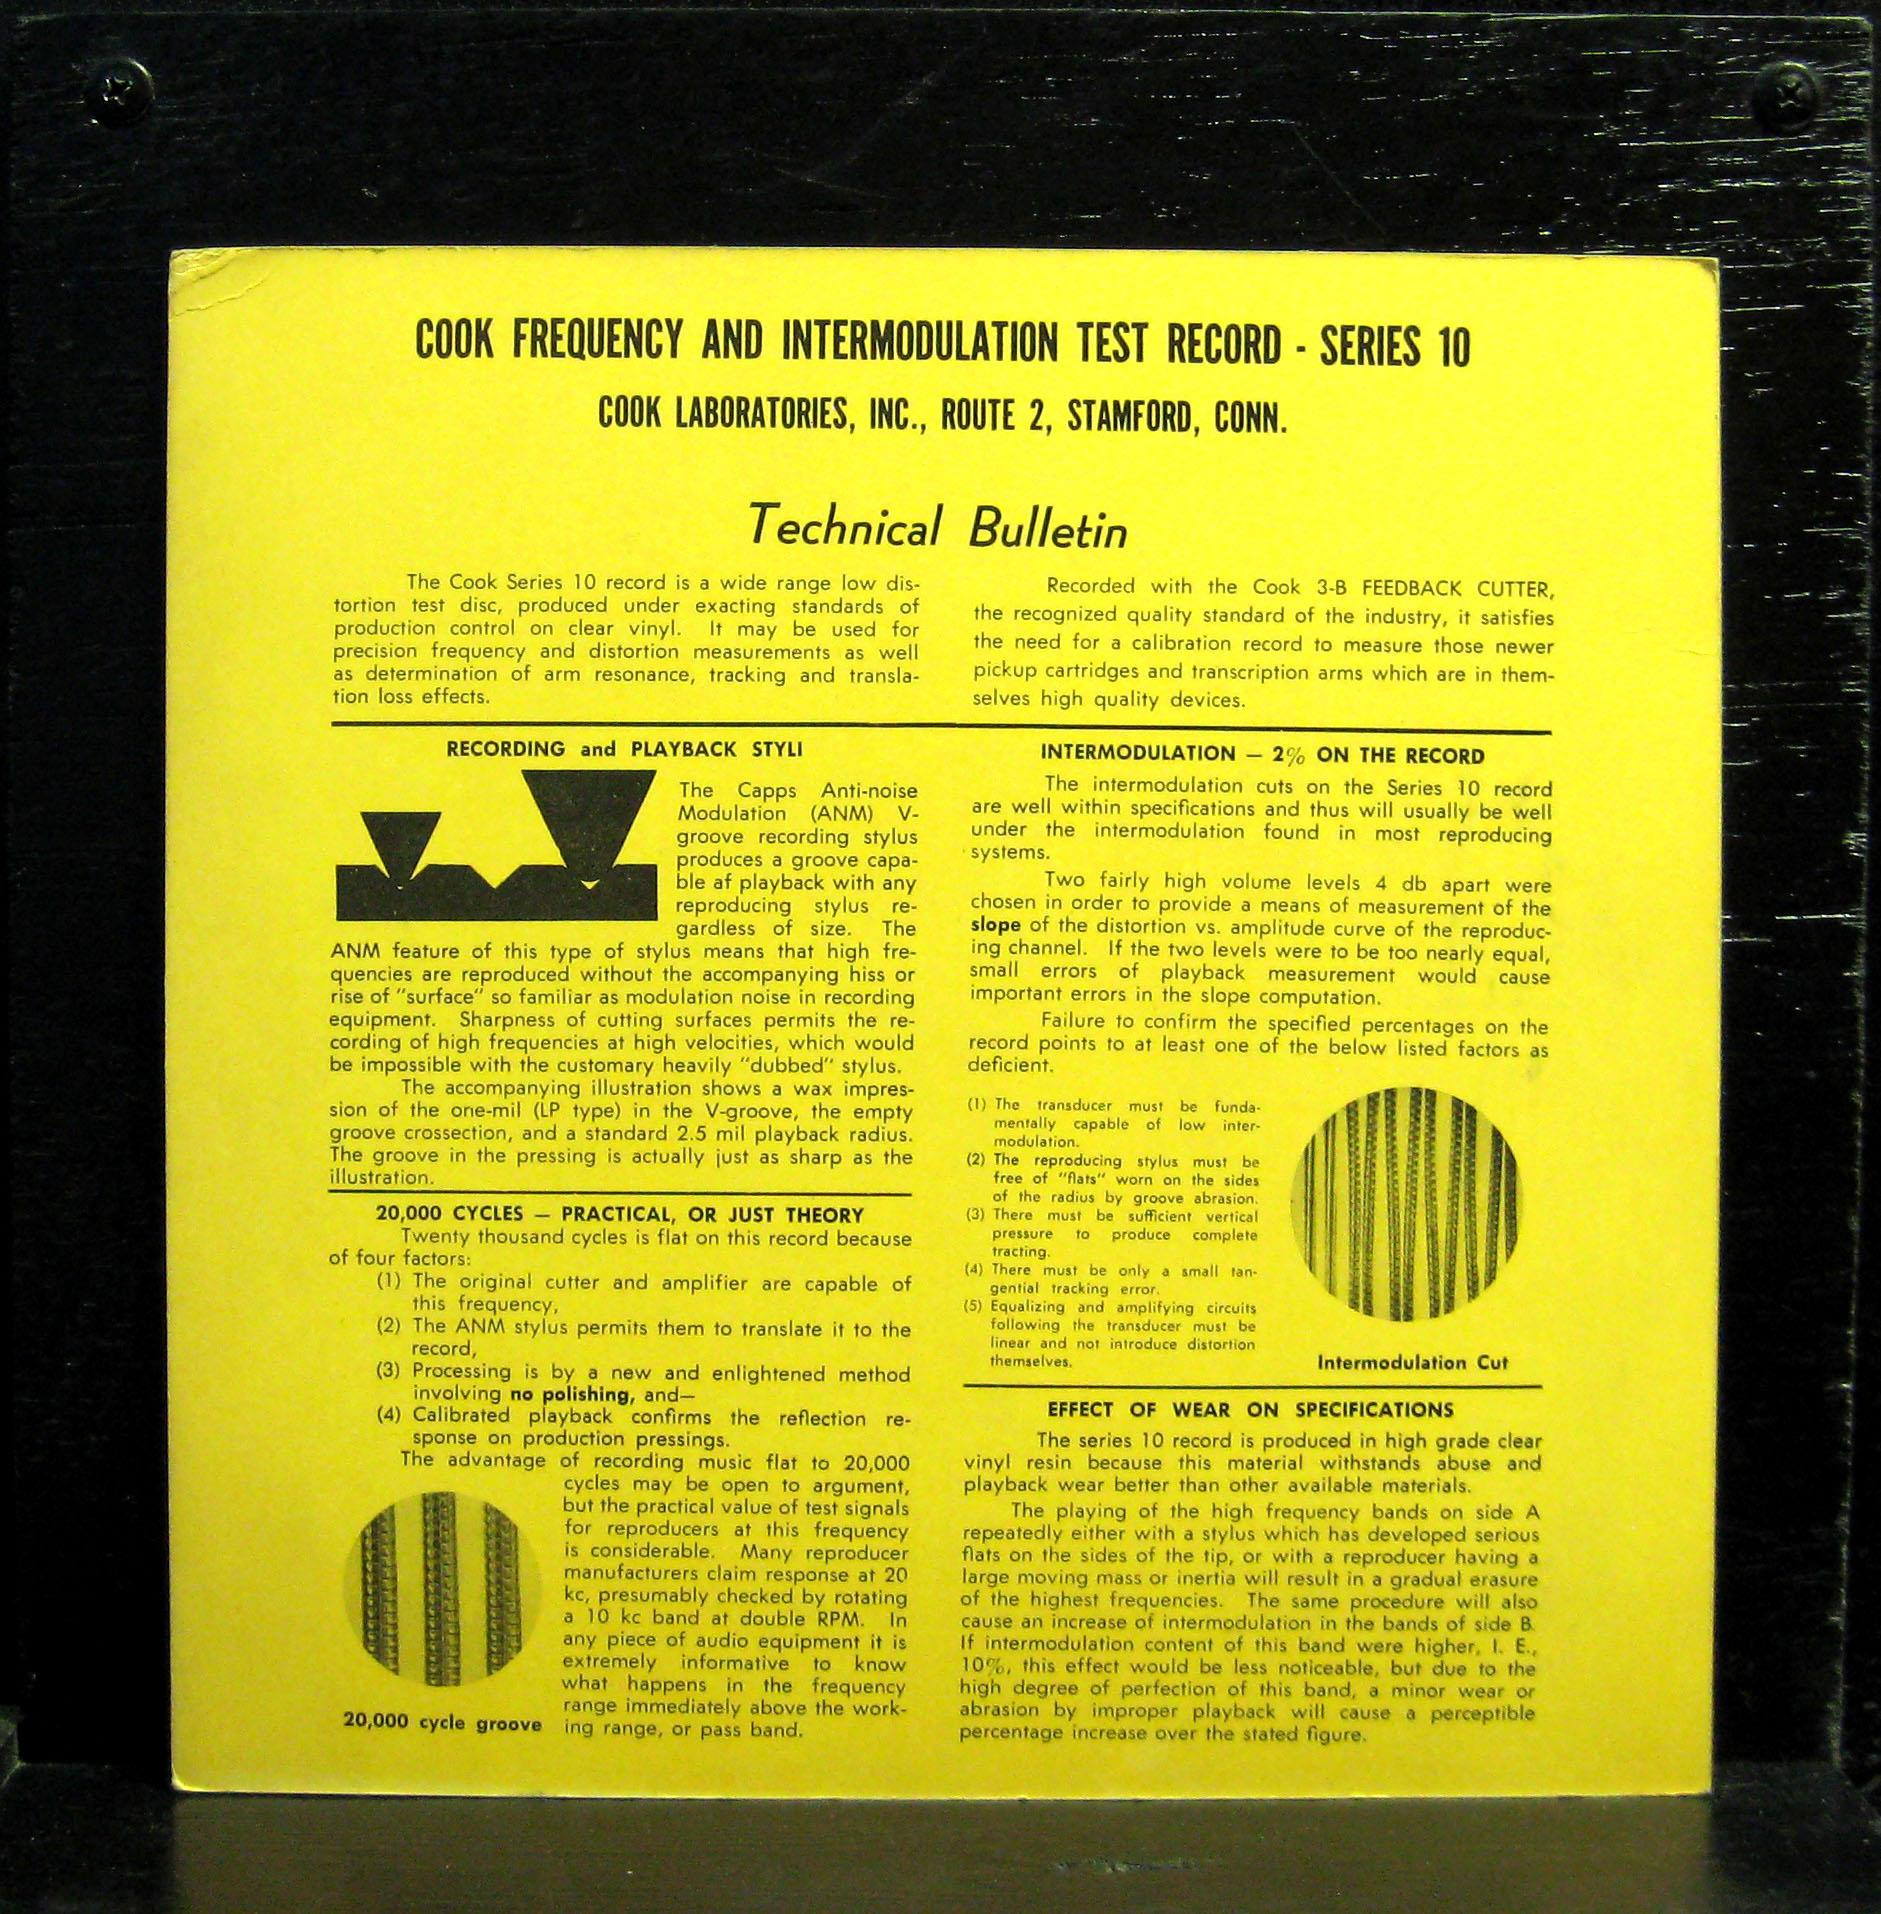 Cook Test Record Frequency & Intermodulation